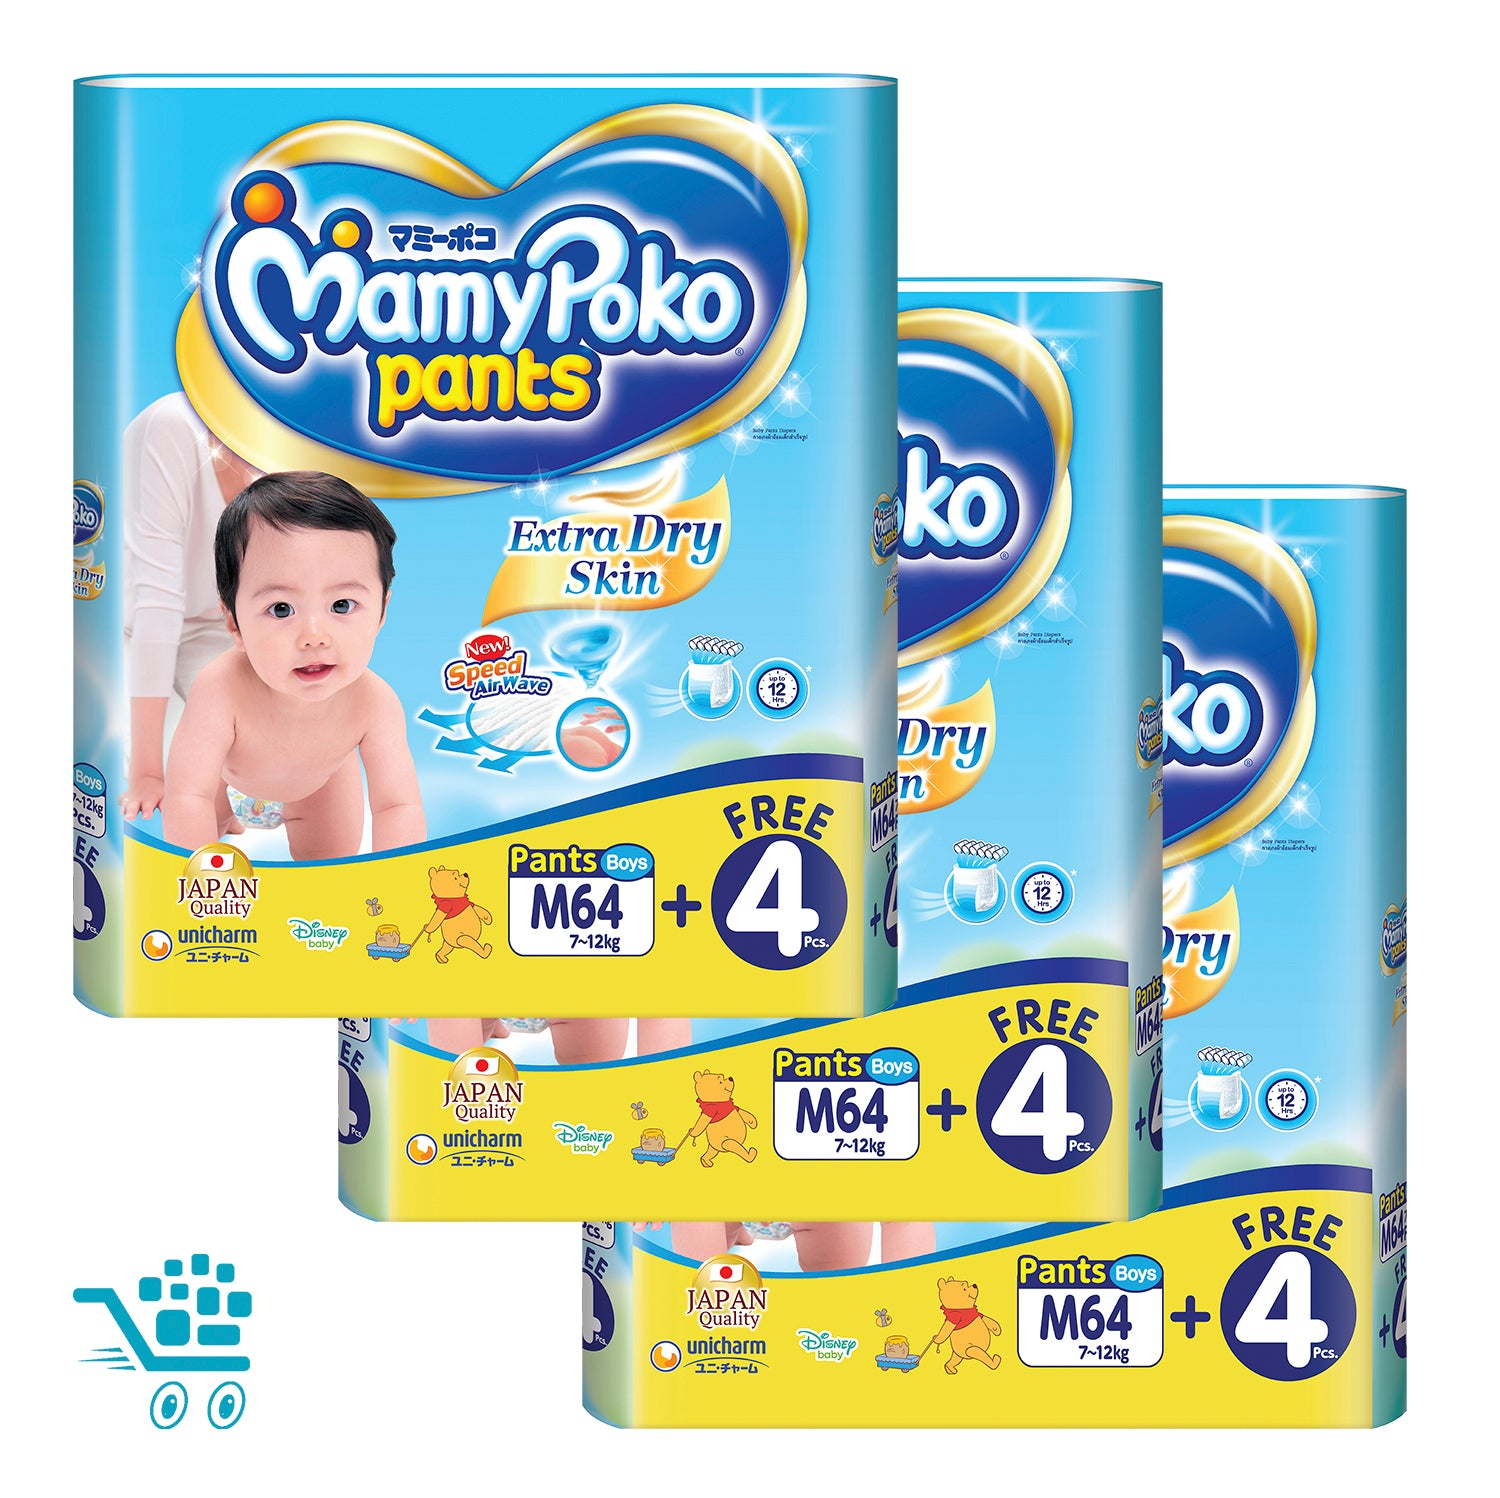 MamyPoko Extra Dry Skin Pants Bonus Pack Boy M 64+4 pieces x 3 packs